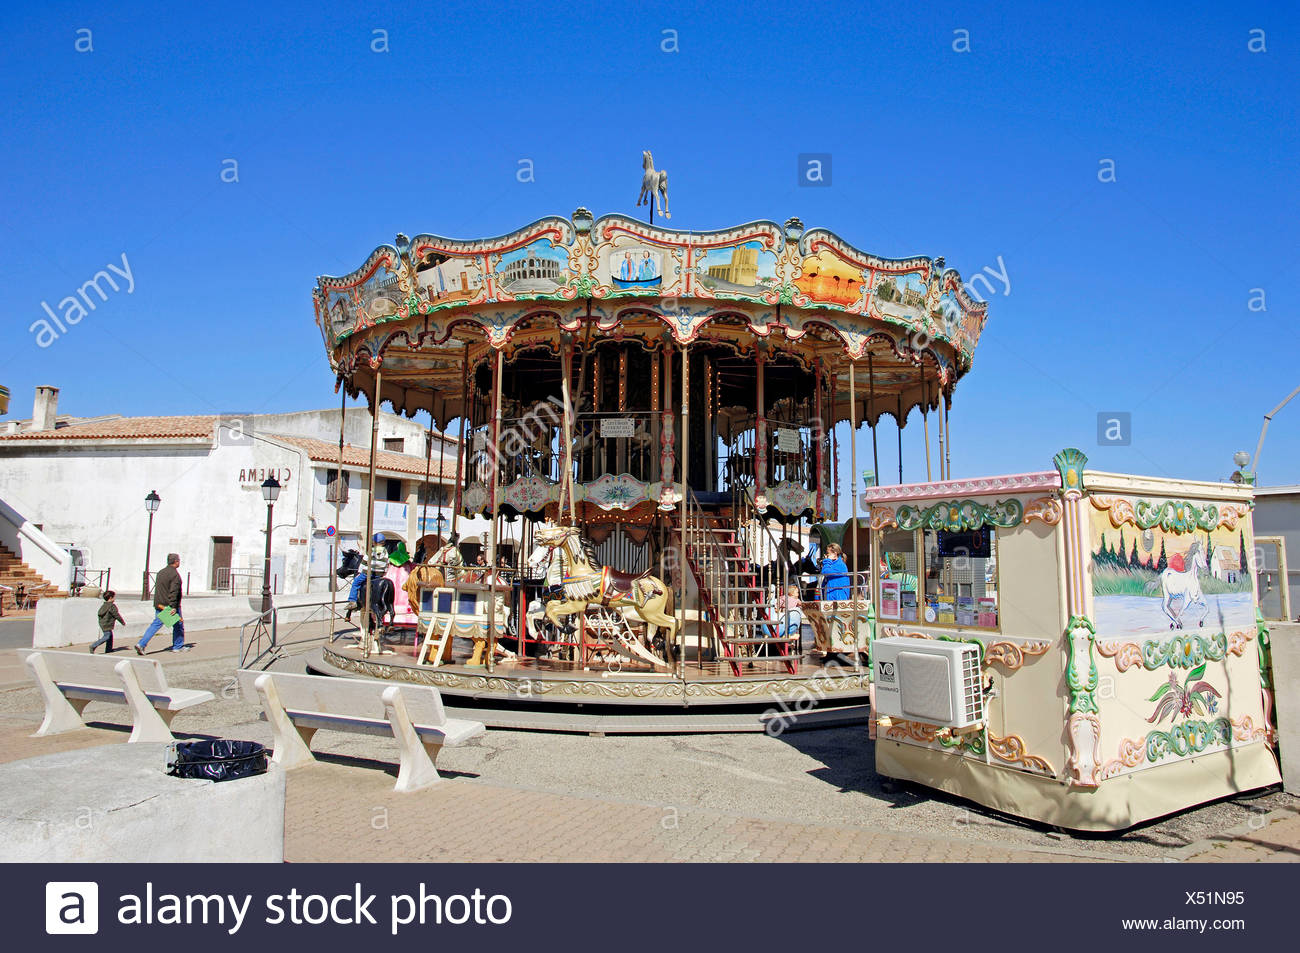 Carrousel, Les Saintes-Maries-de-la-Mer, Camargue, Bouches-du-Rhone, Provence-Alpes-Cote d'Azur, Southern France, France, Europe Stock Photo